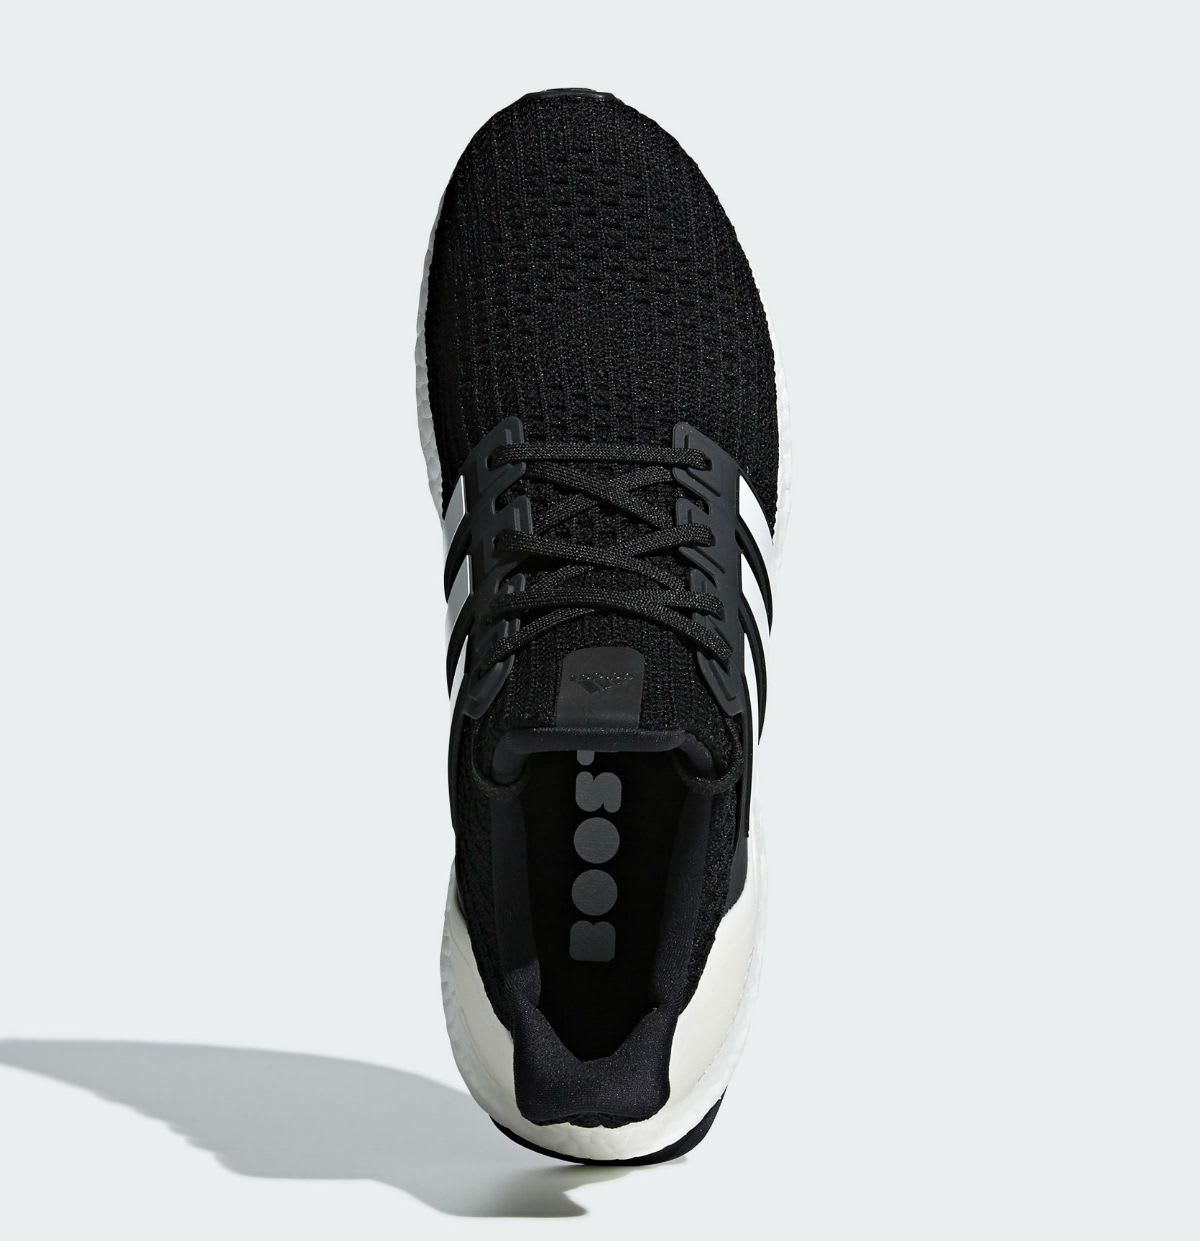 premium selection bd572 4784e ... promo code image via adidas adidas ultra boost 4.0 show your stripes  core black cloud white